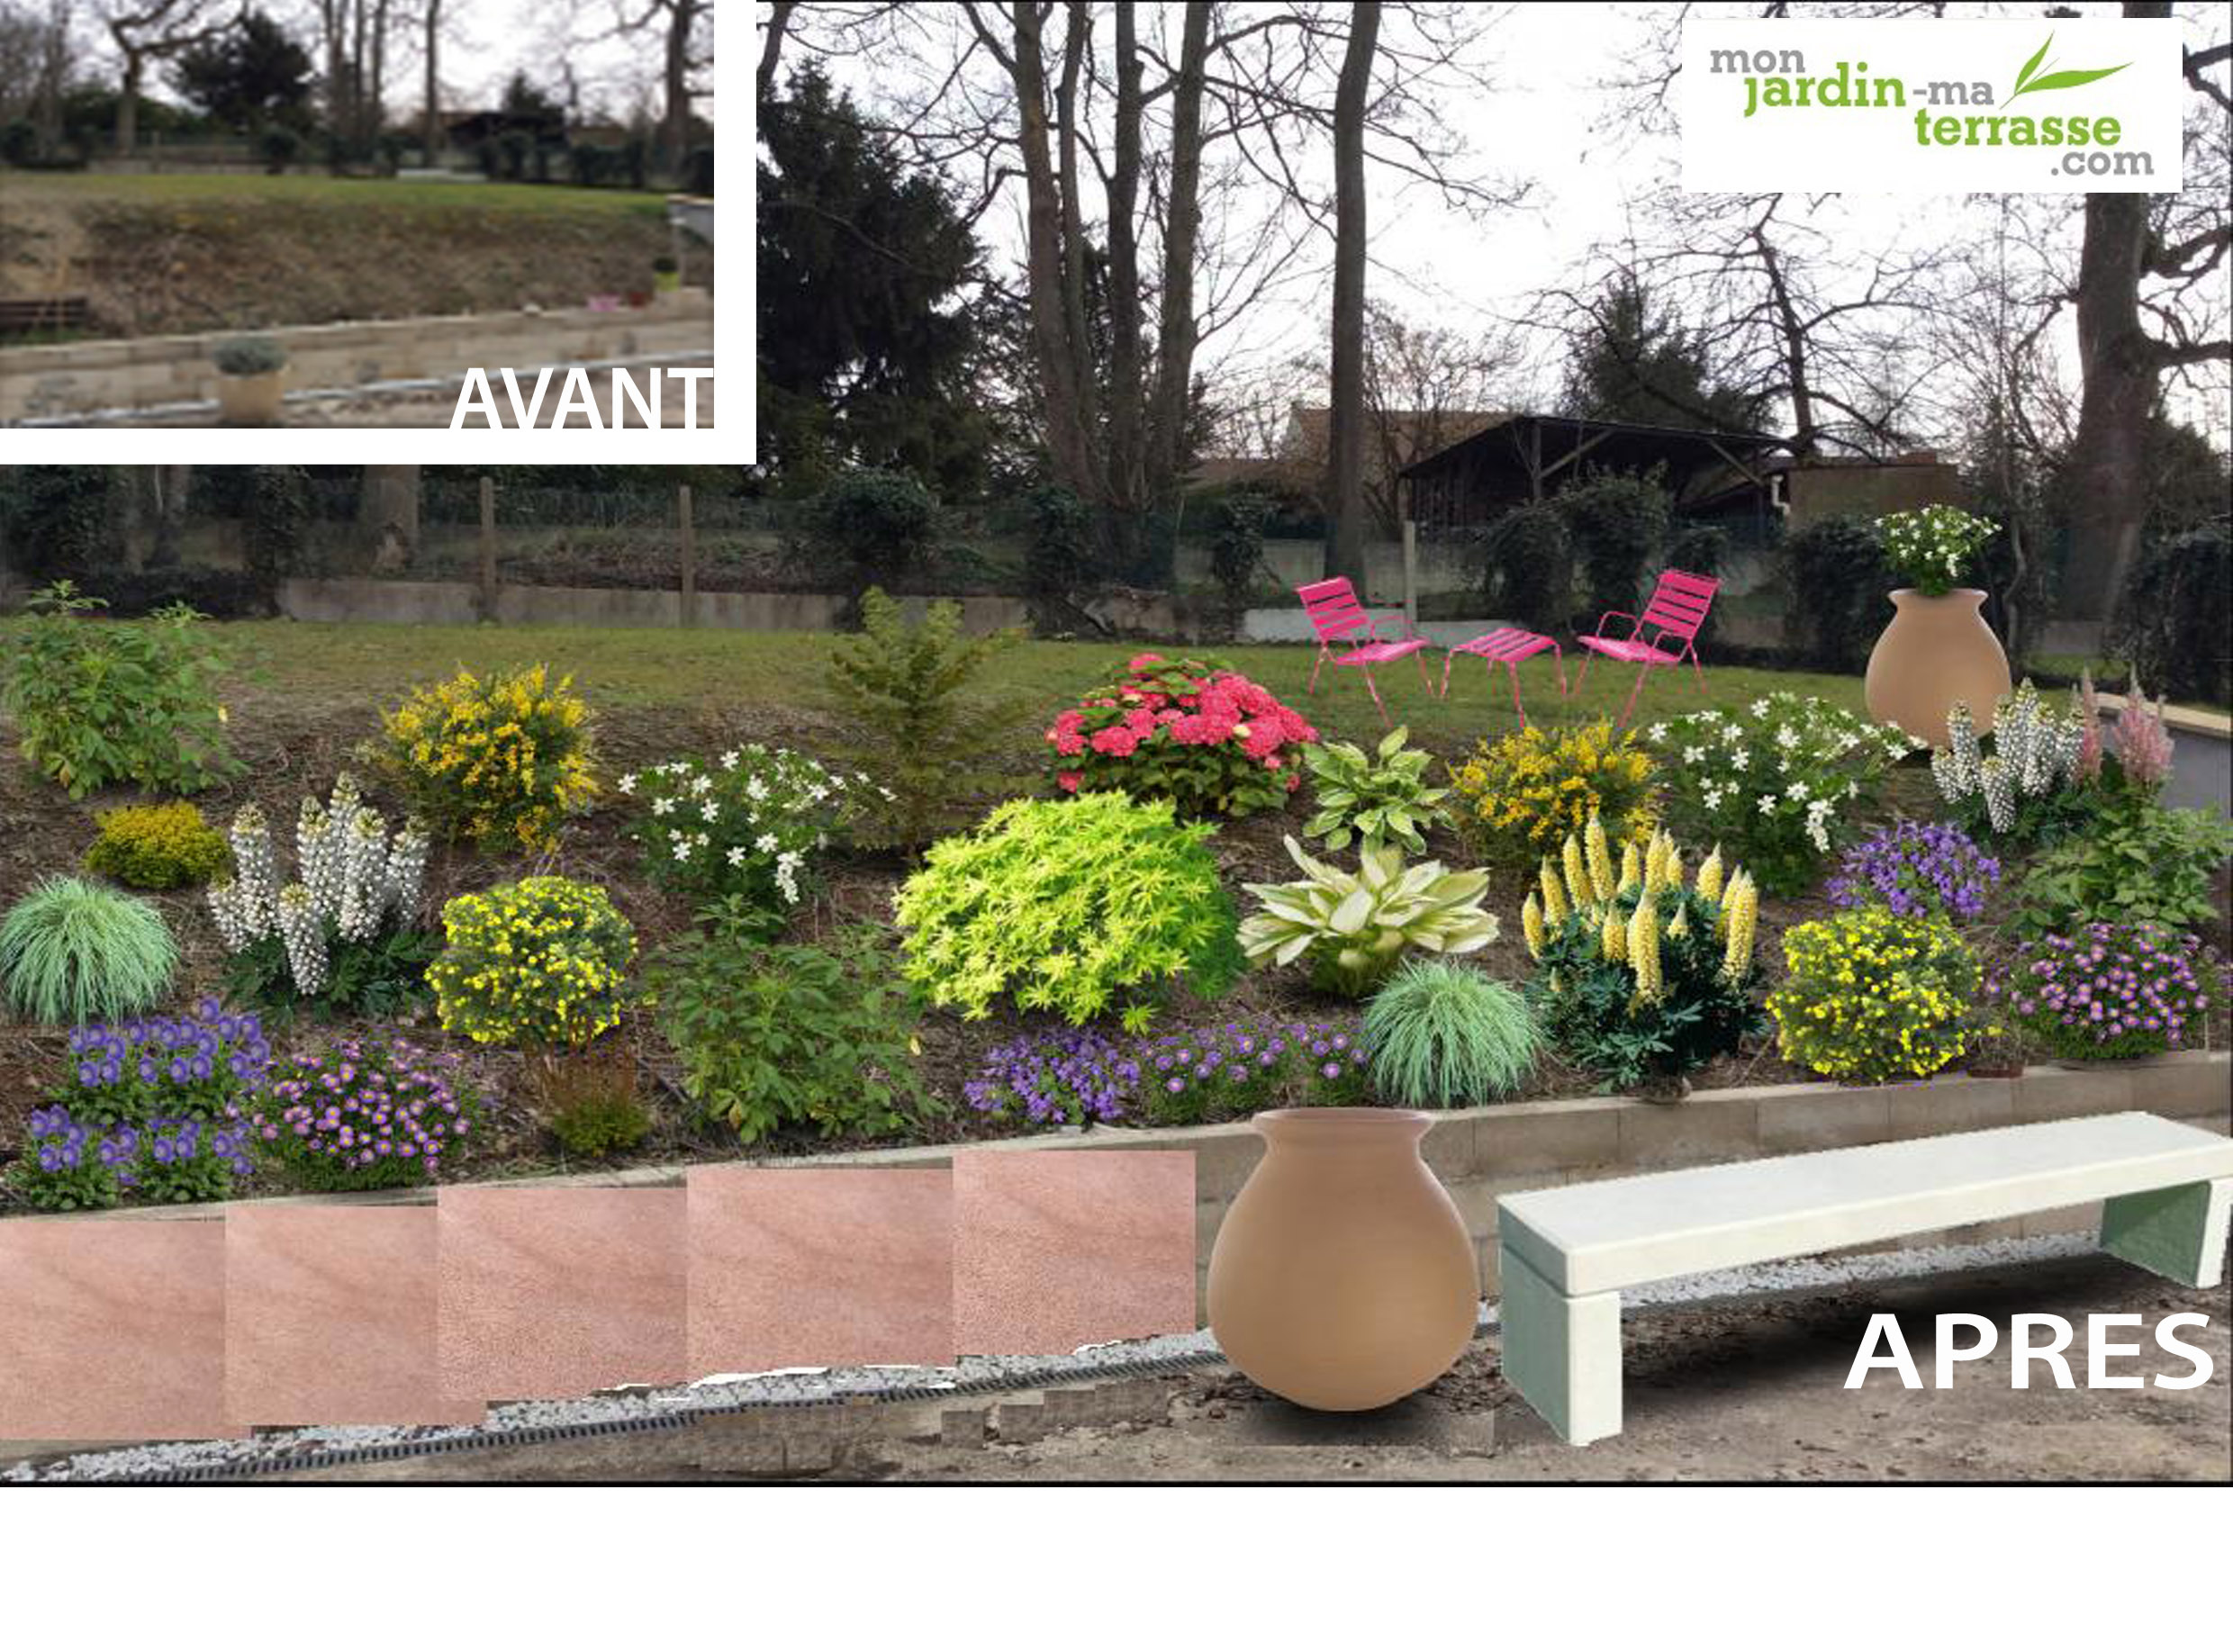 Am nager un talus en pente l ombre monjardin for Jardin en pente amenagement